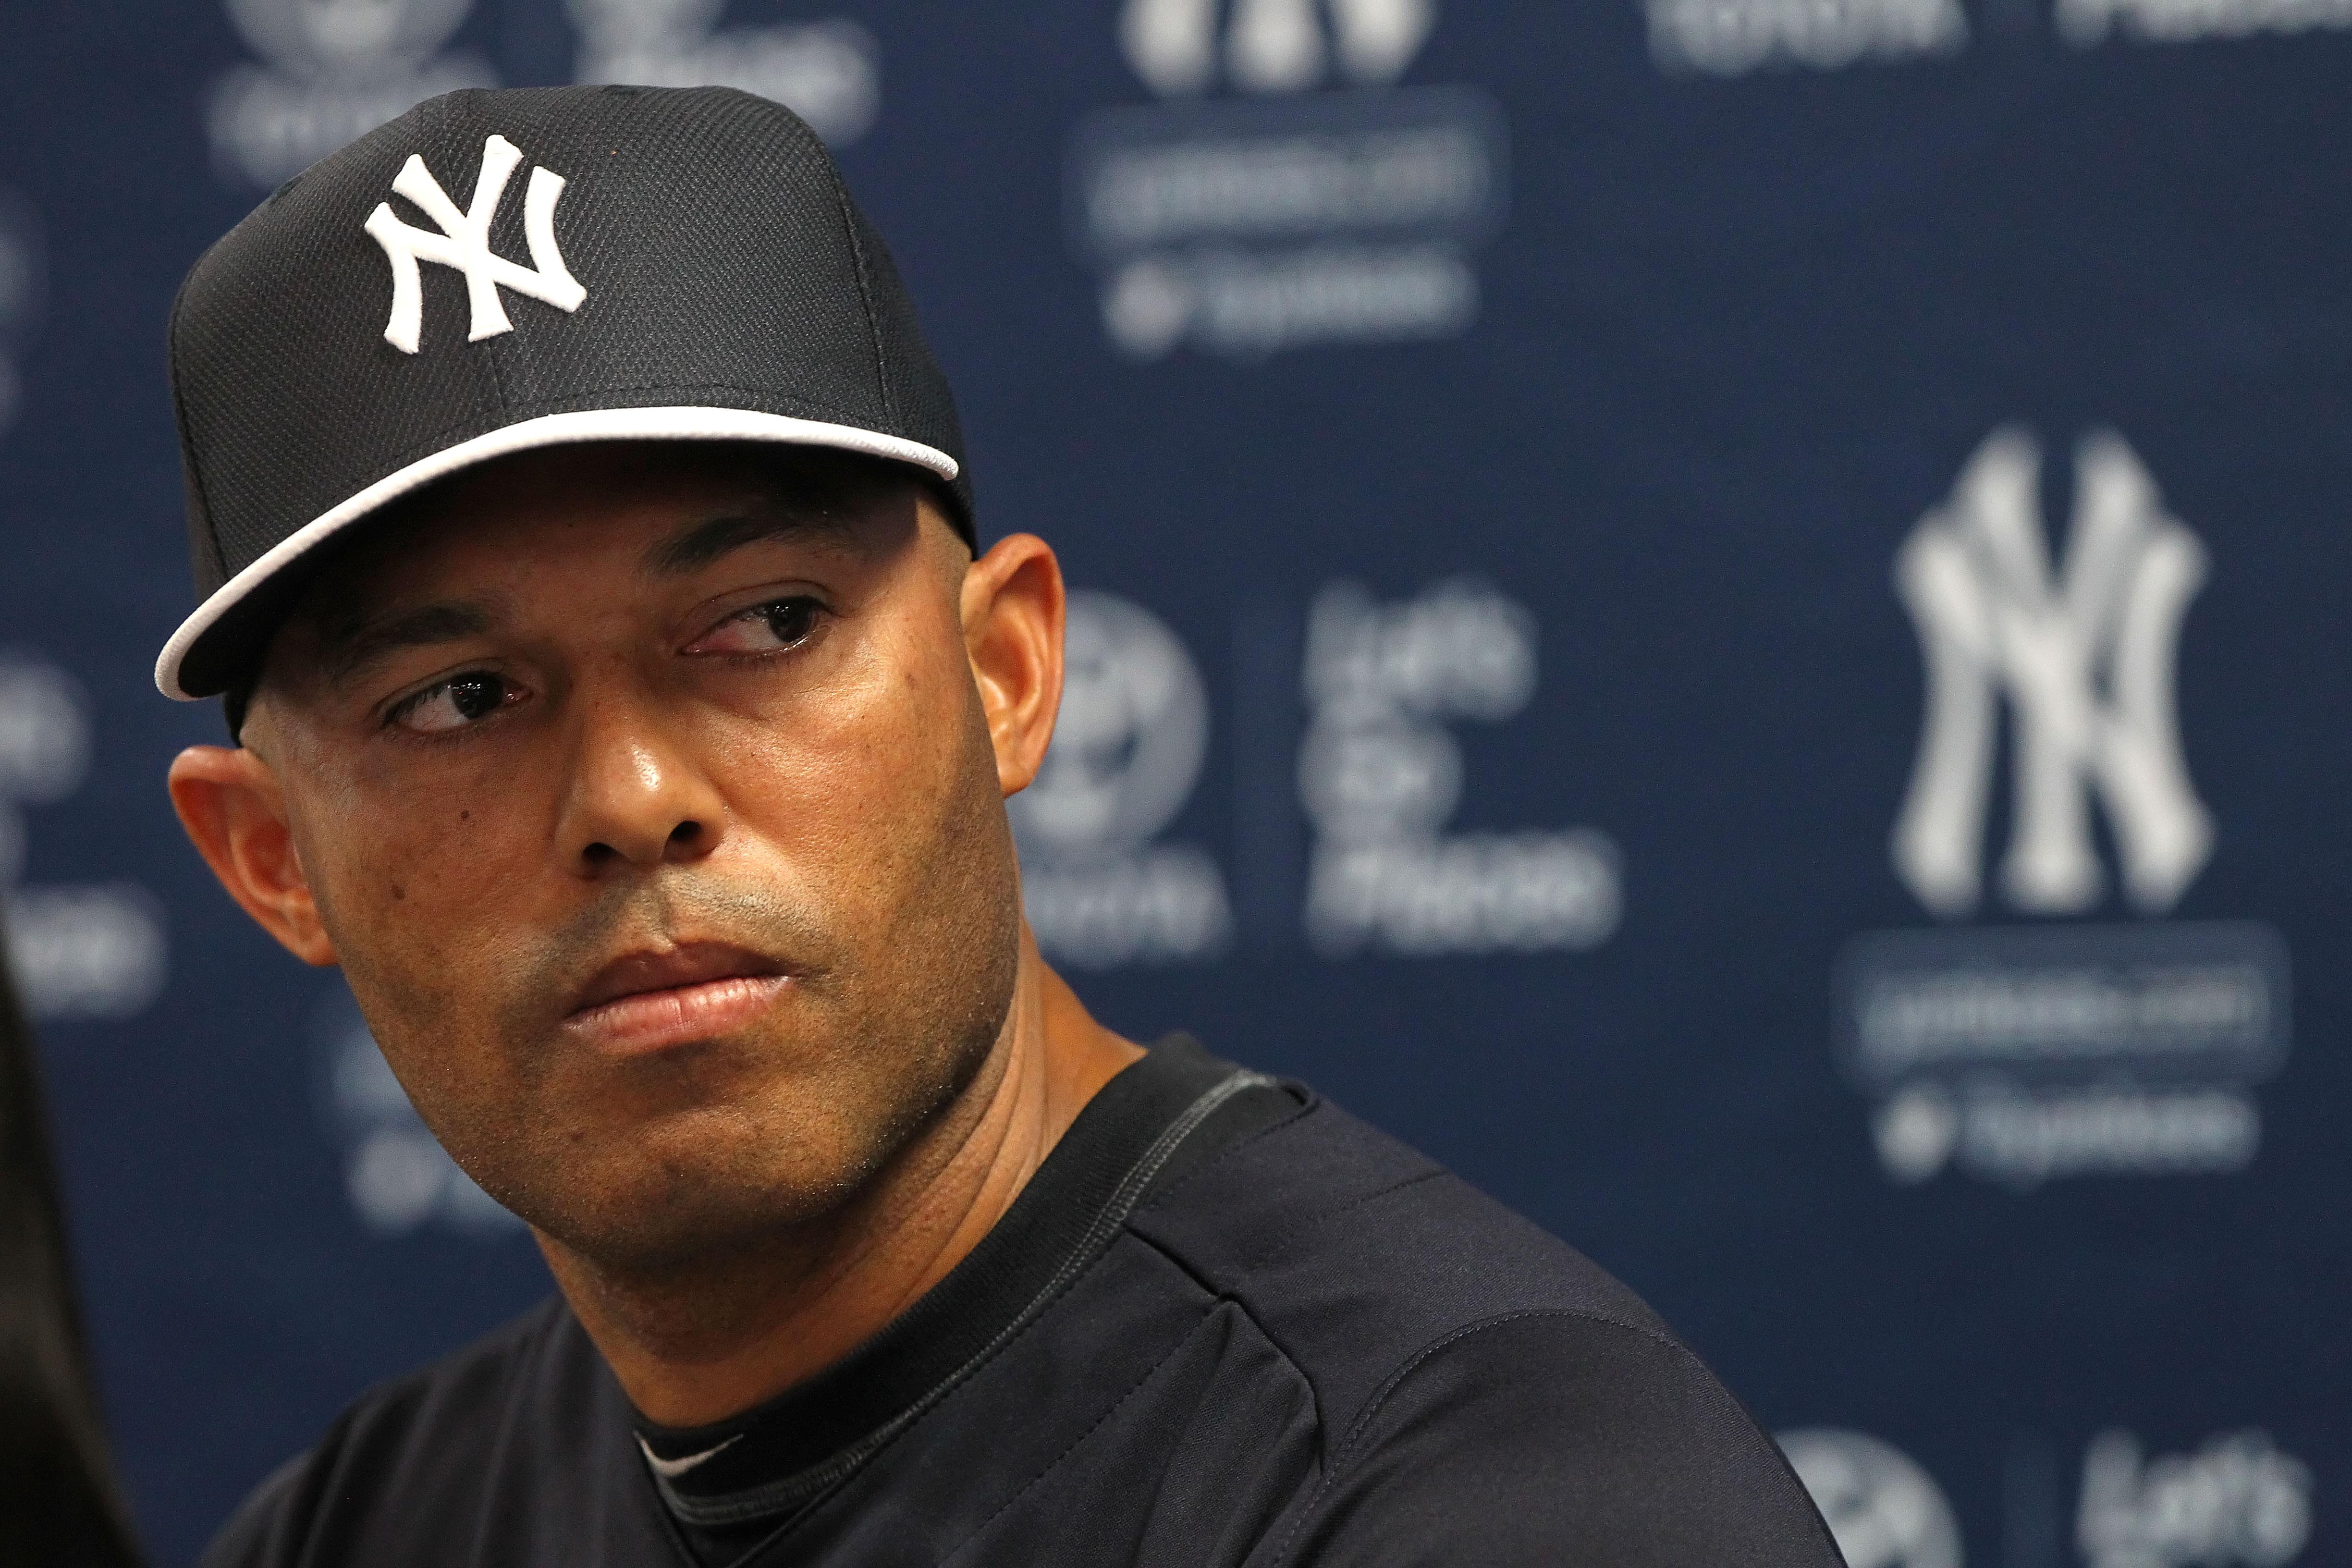 Mariano Rivera announced he will retire after this season. (USA Today Sports)